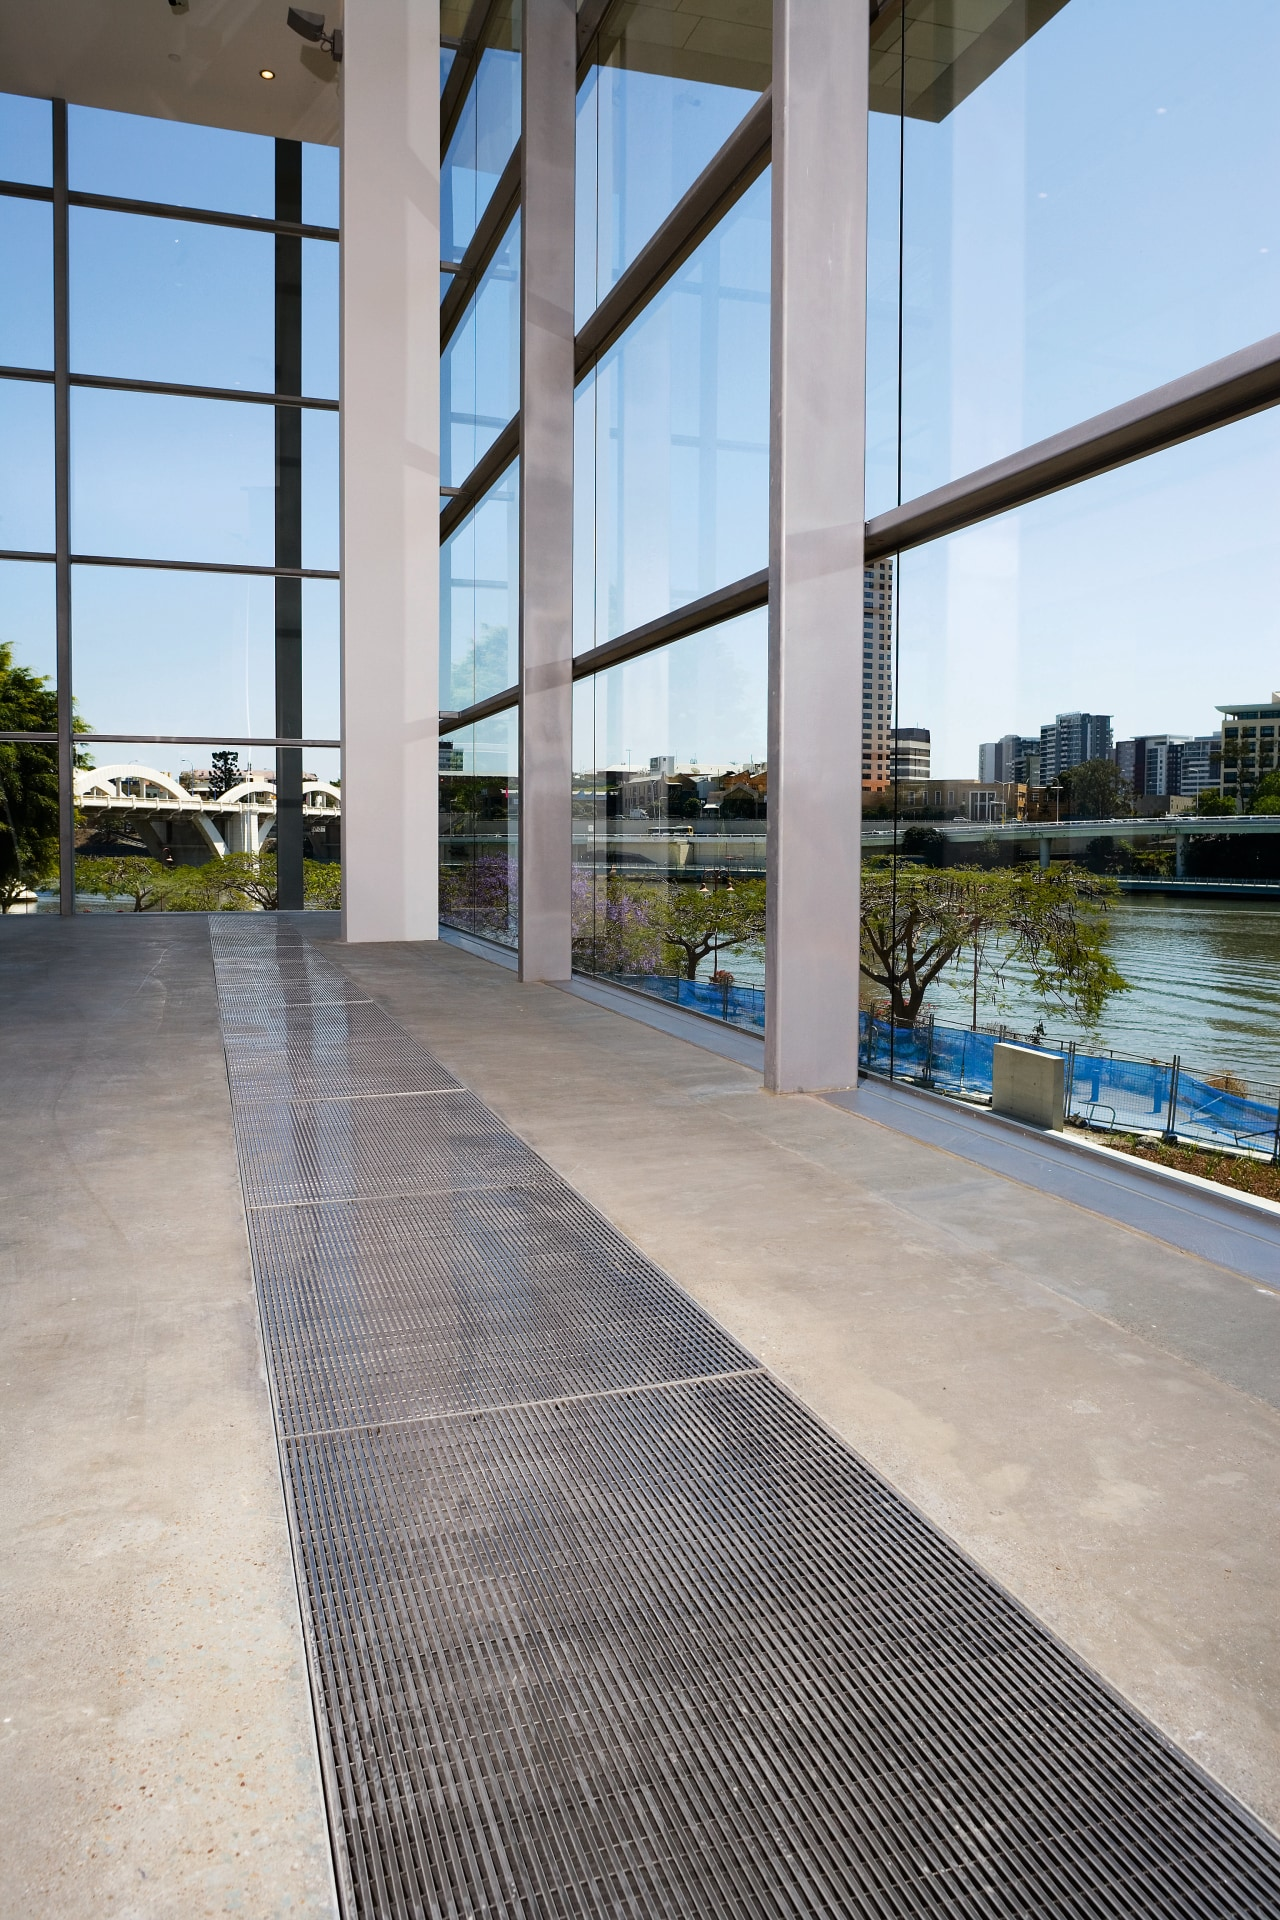 A viewof some polished concrete flooring by ACO apartment, architecture, building, condominium, floor, flooring, real estate, reflection, sky, walkway, water, window, gray